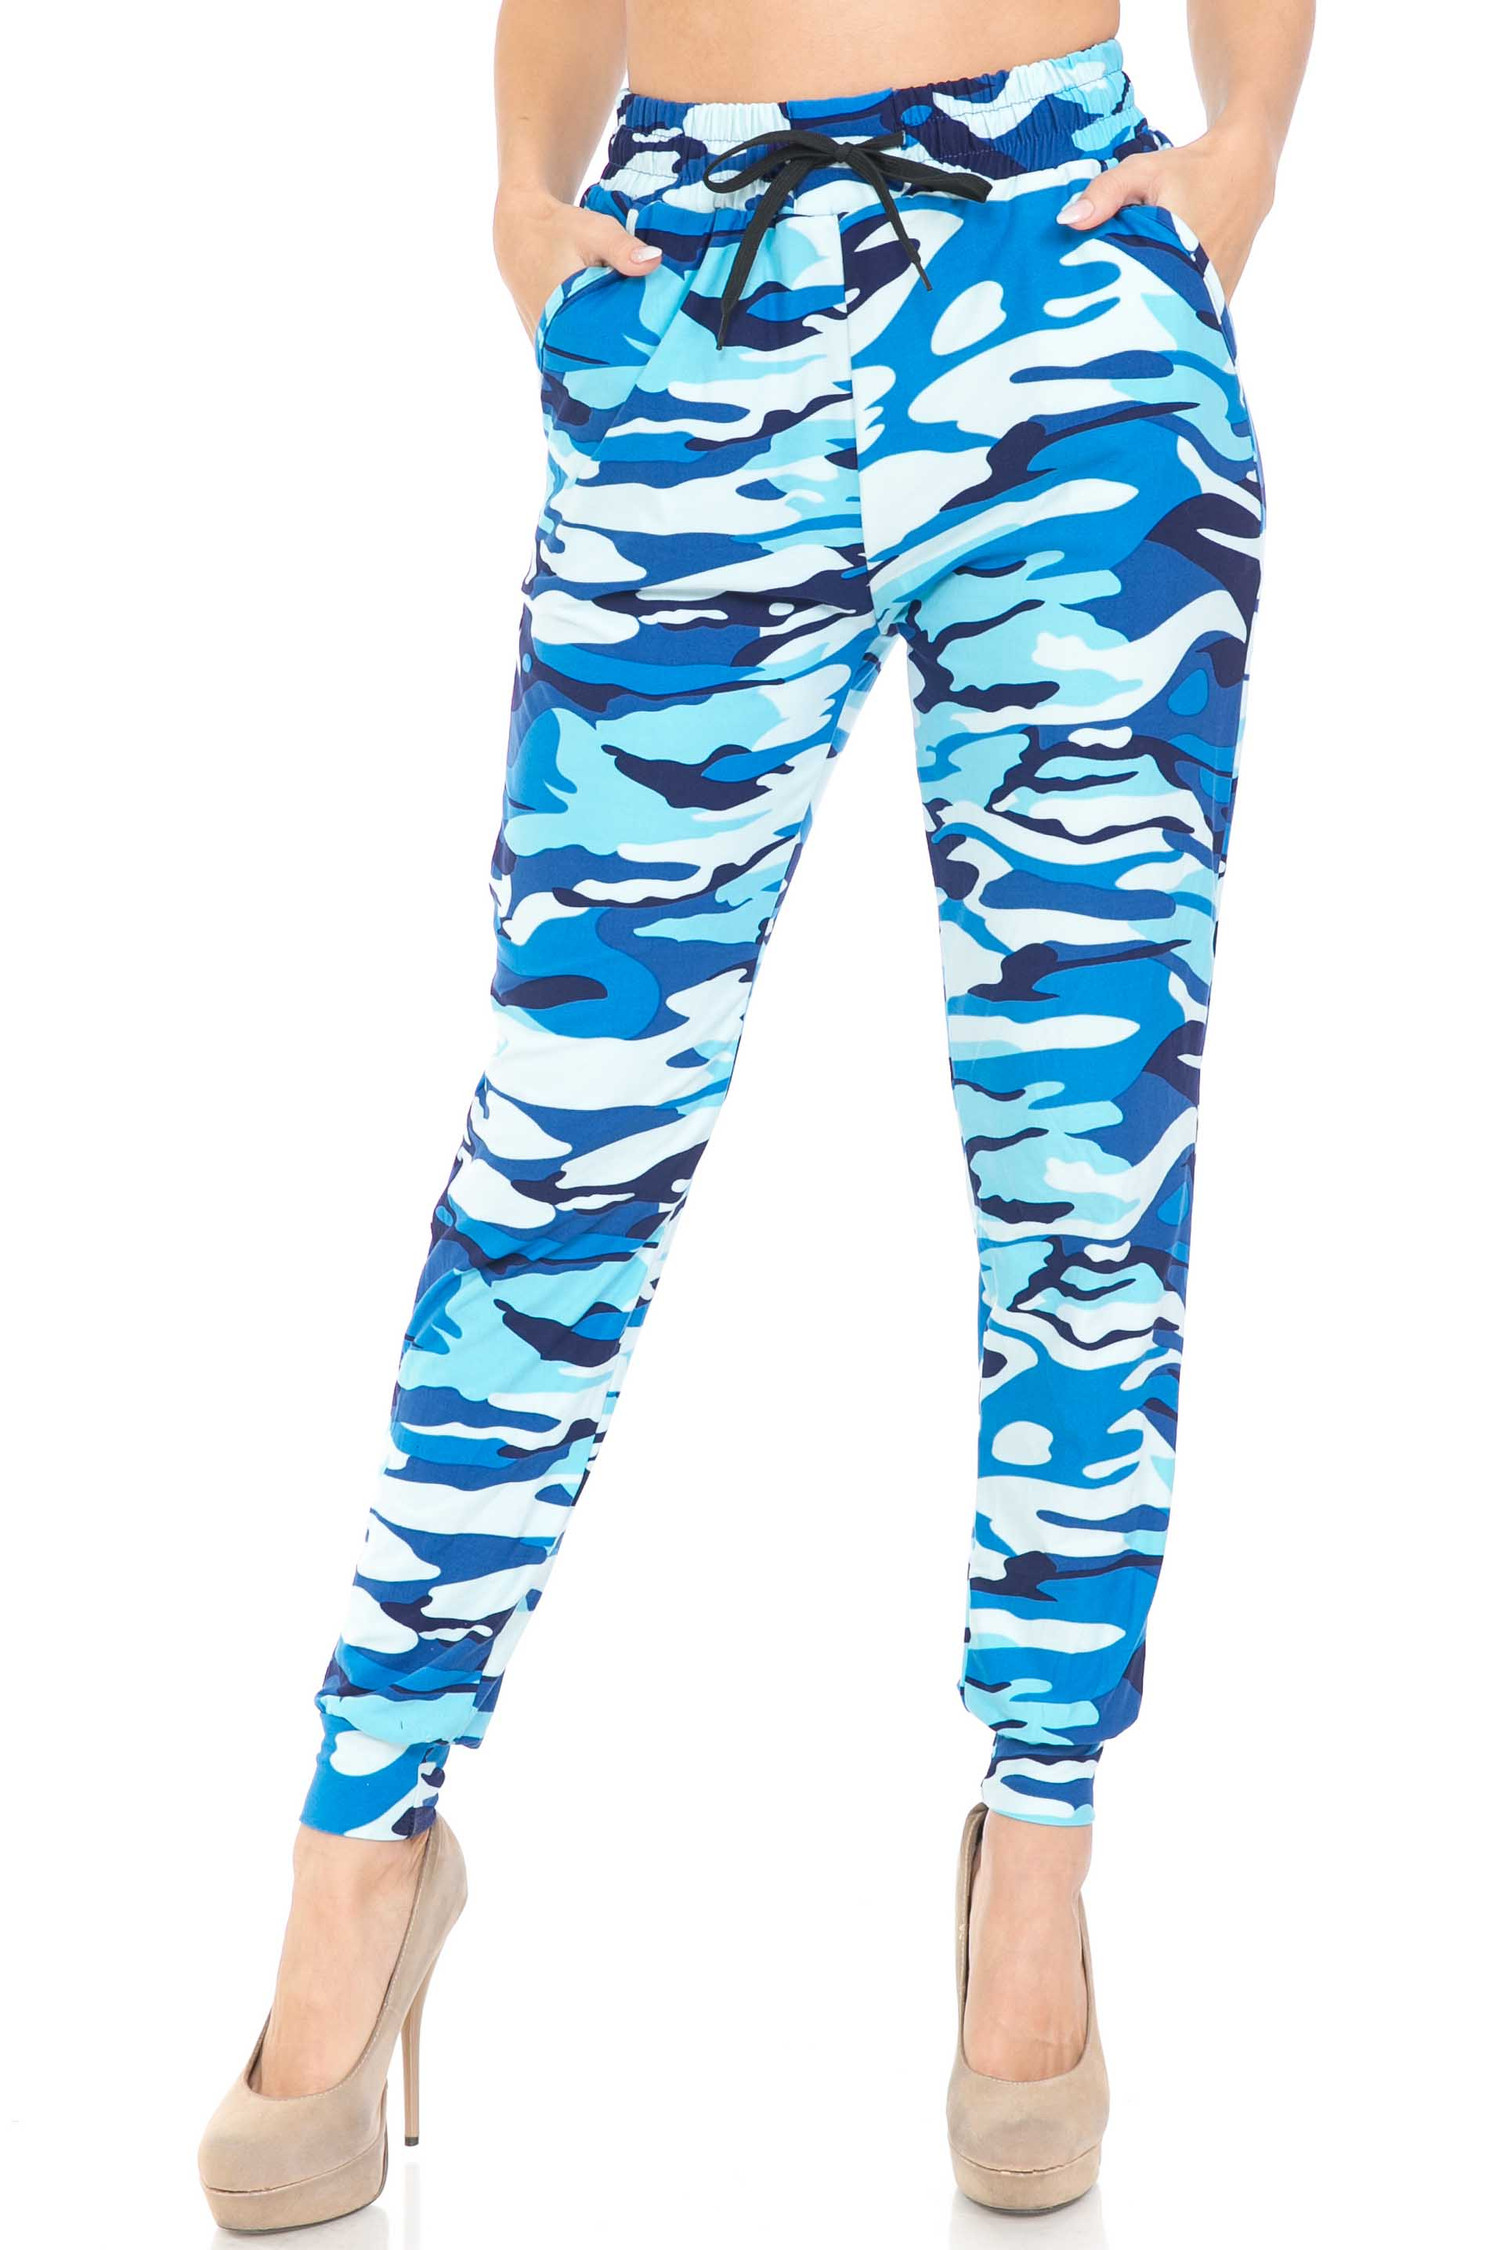 Buttery Soft Blue Camouflage Joggers - EEVEE